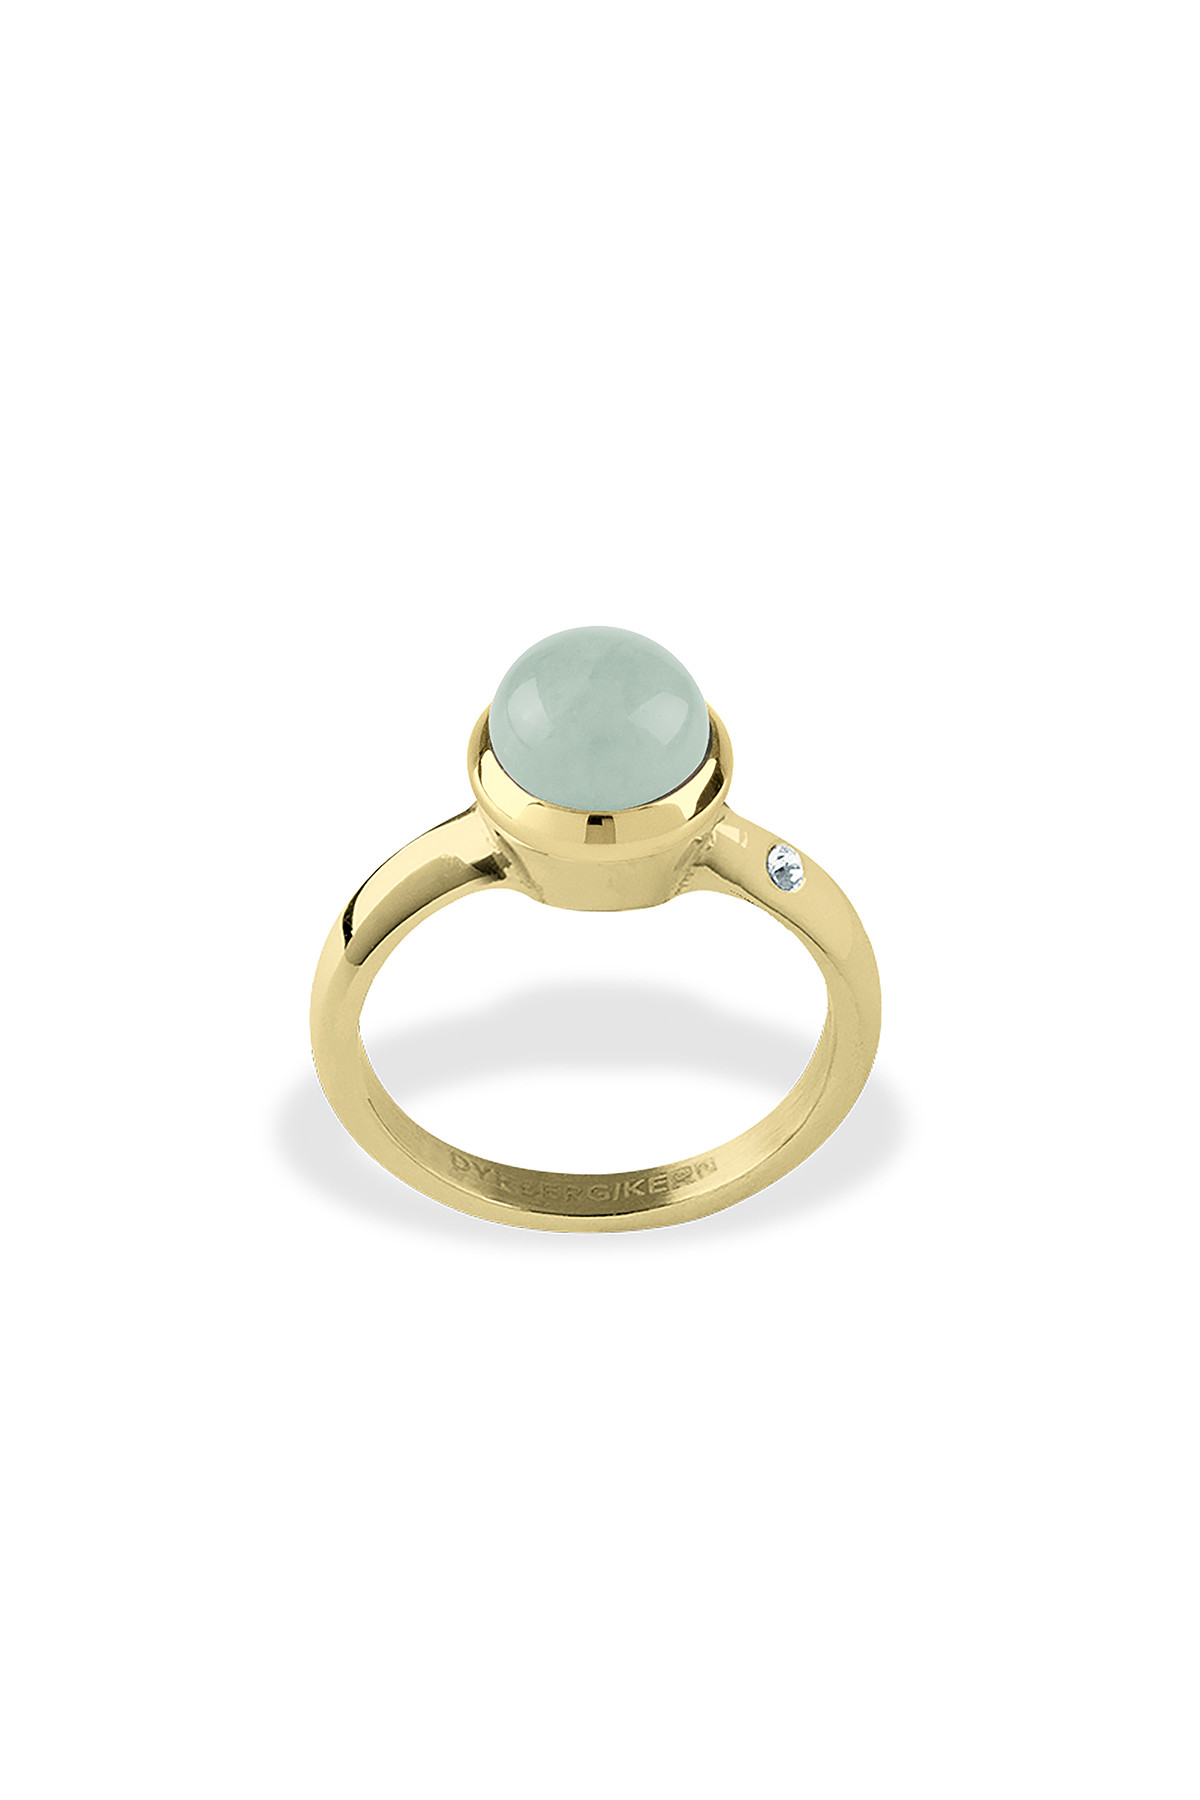 Image of   DYRBERG/KERN BUDRING RING 352333 (Gold, Green, III/57)